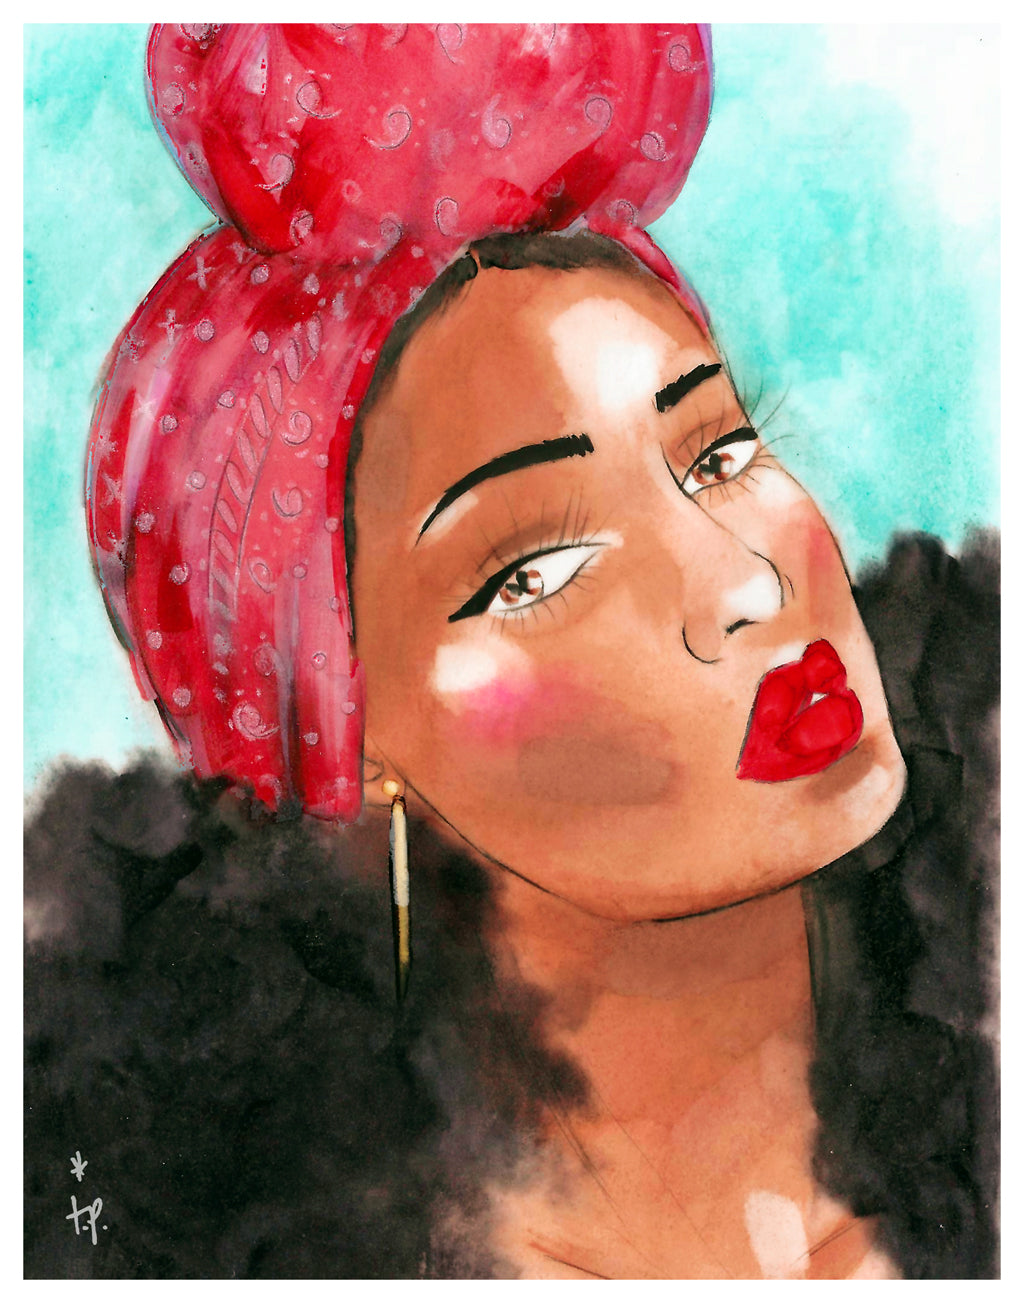 Illustration of a beautiful woman with big curly hair wearing a red printed headwrap by Tatiana Poblah